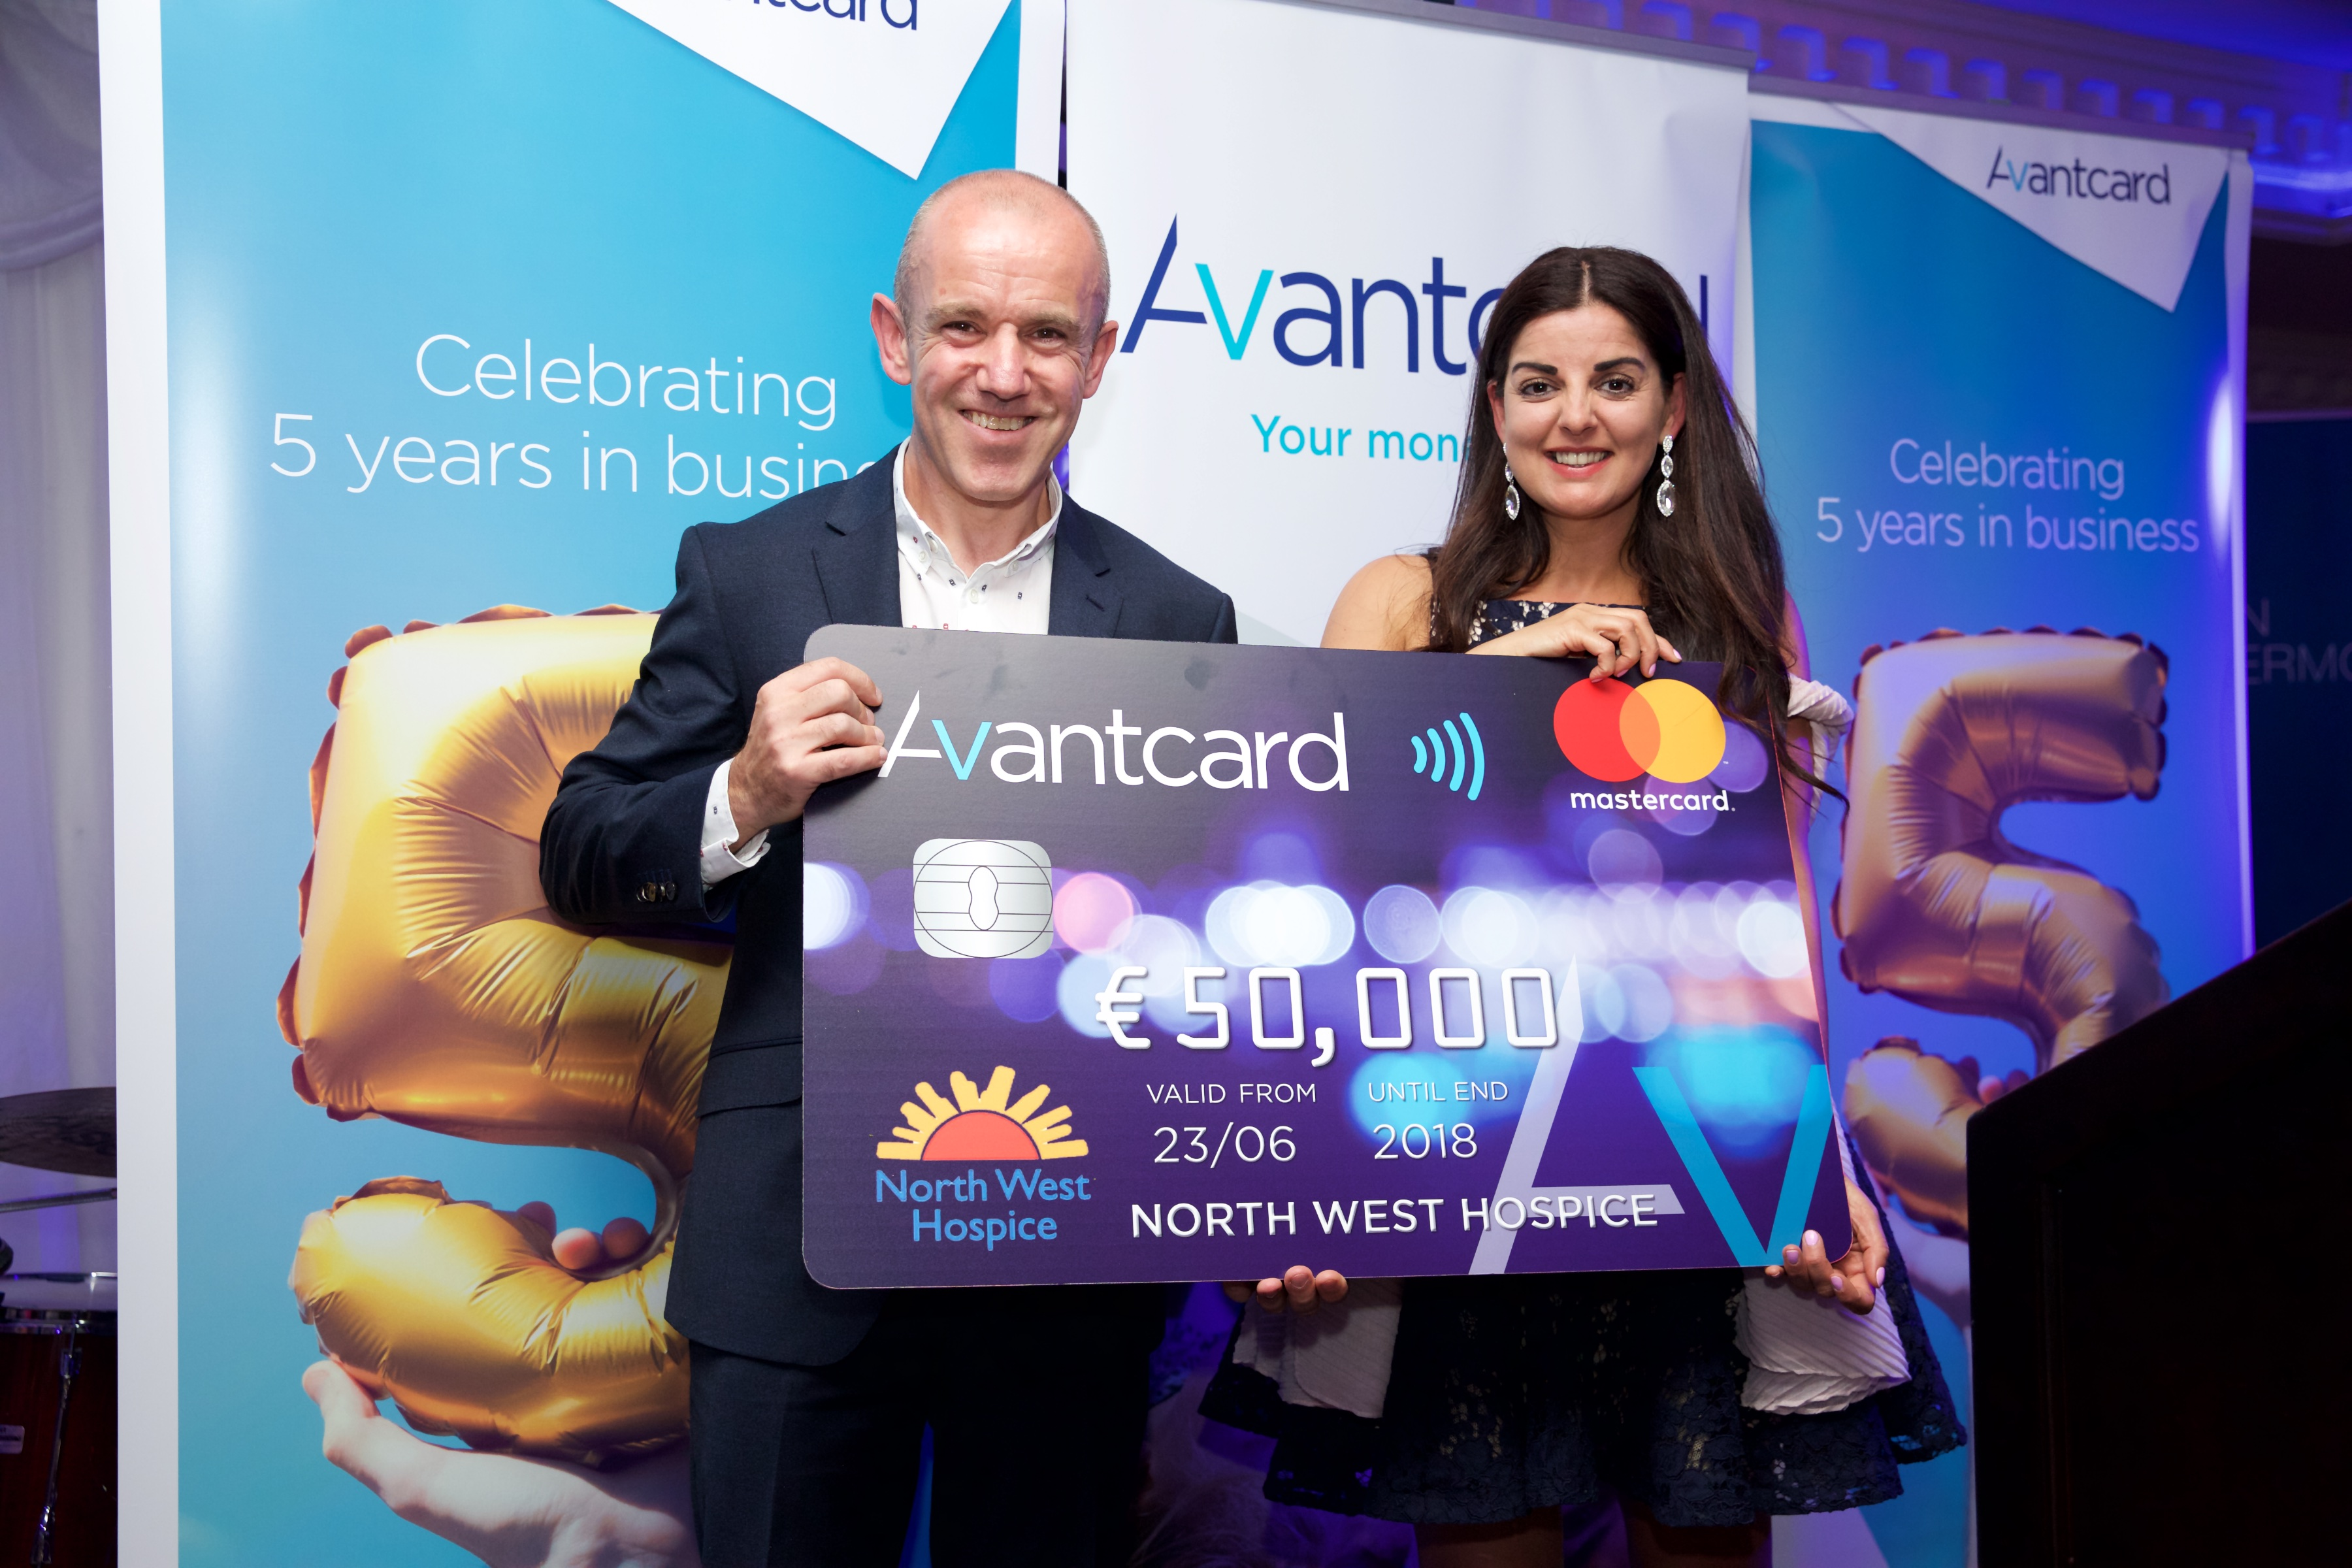 Avantcard donate €50,000 towards North West Hospice new In-Patient Unit.